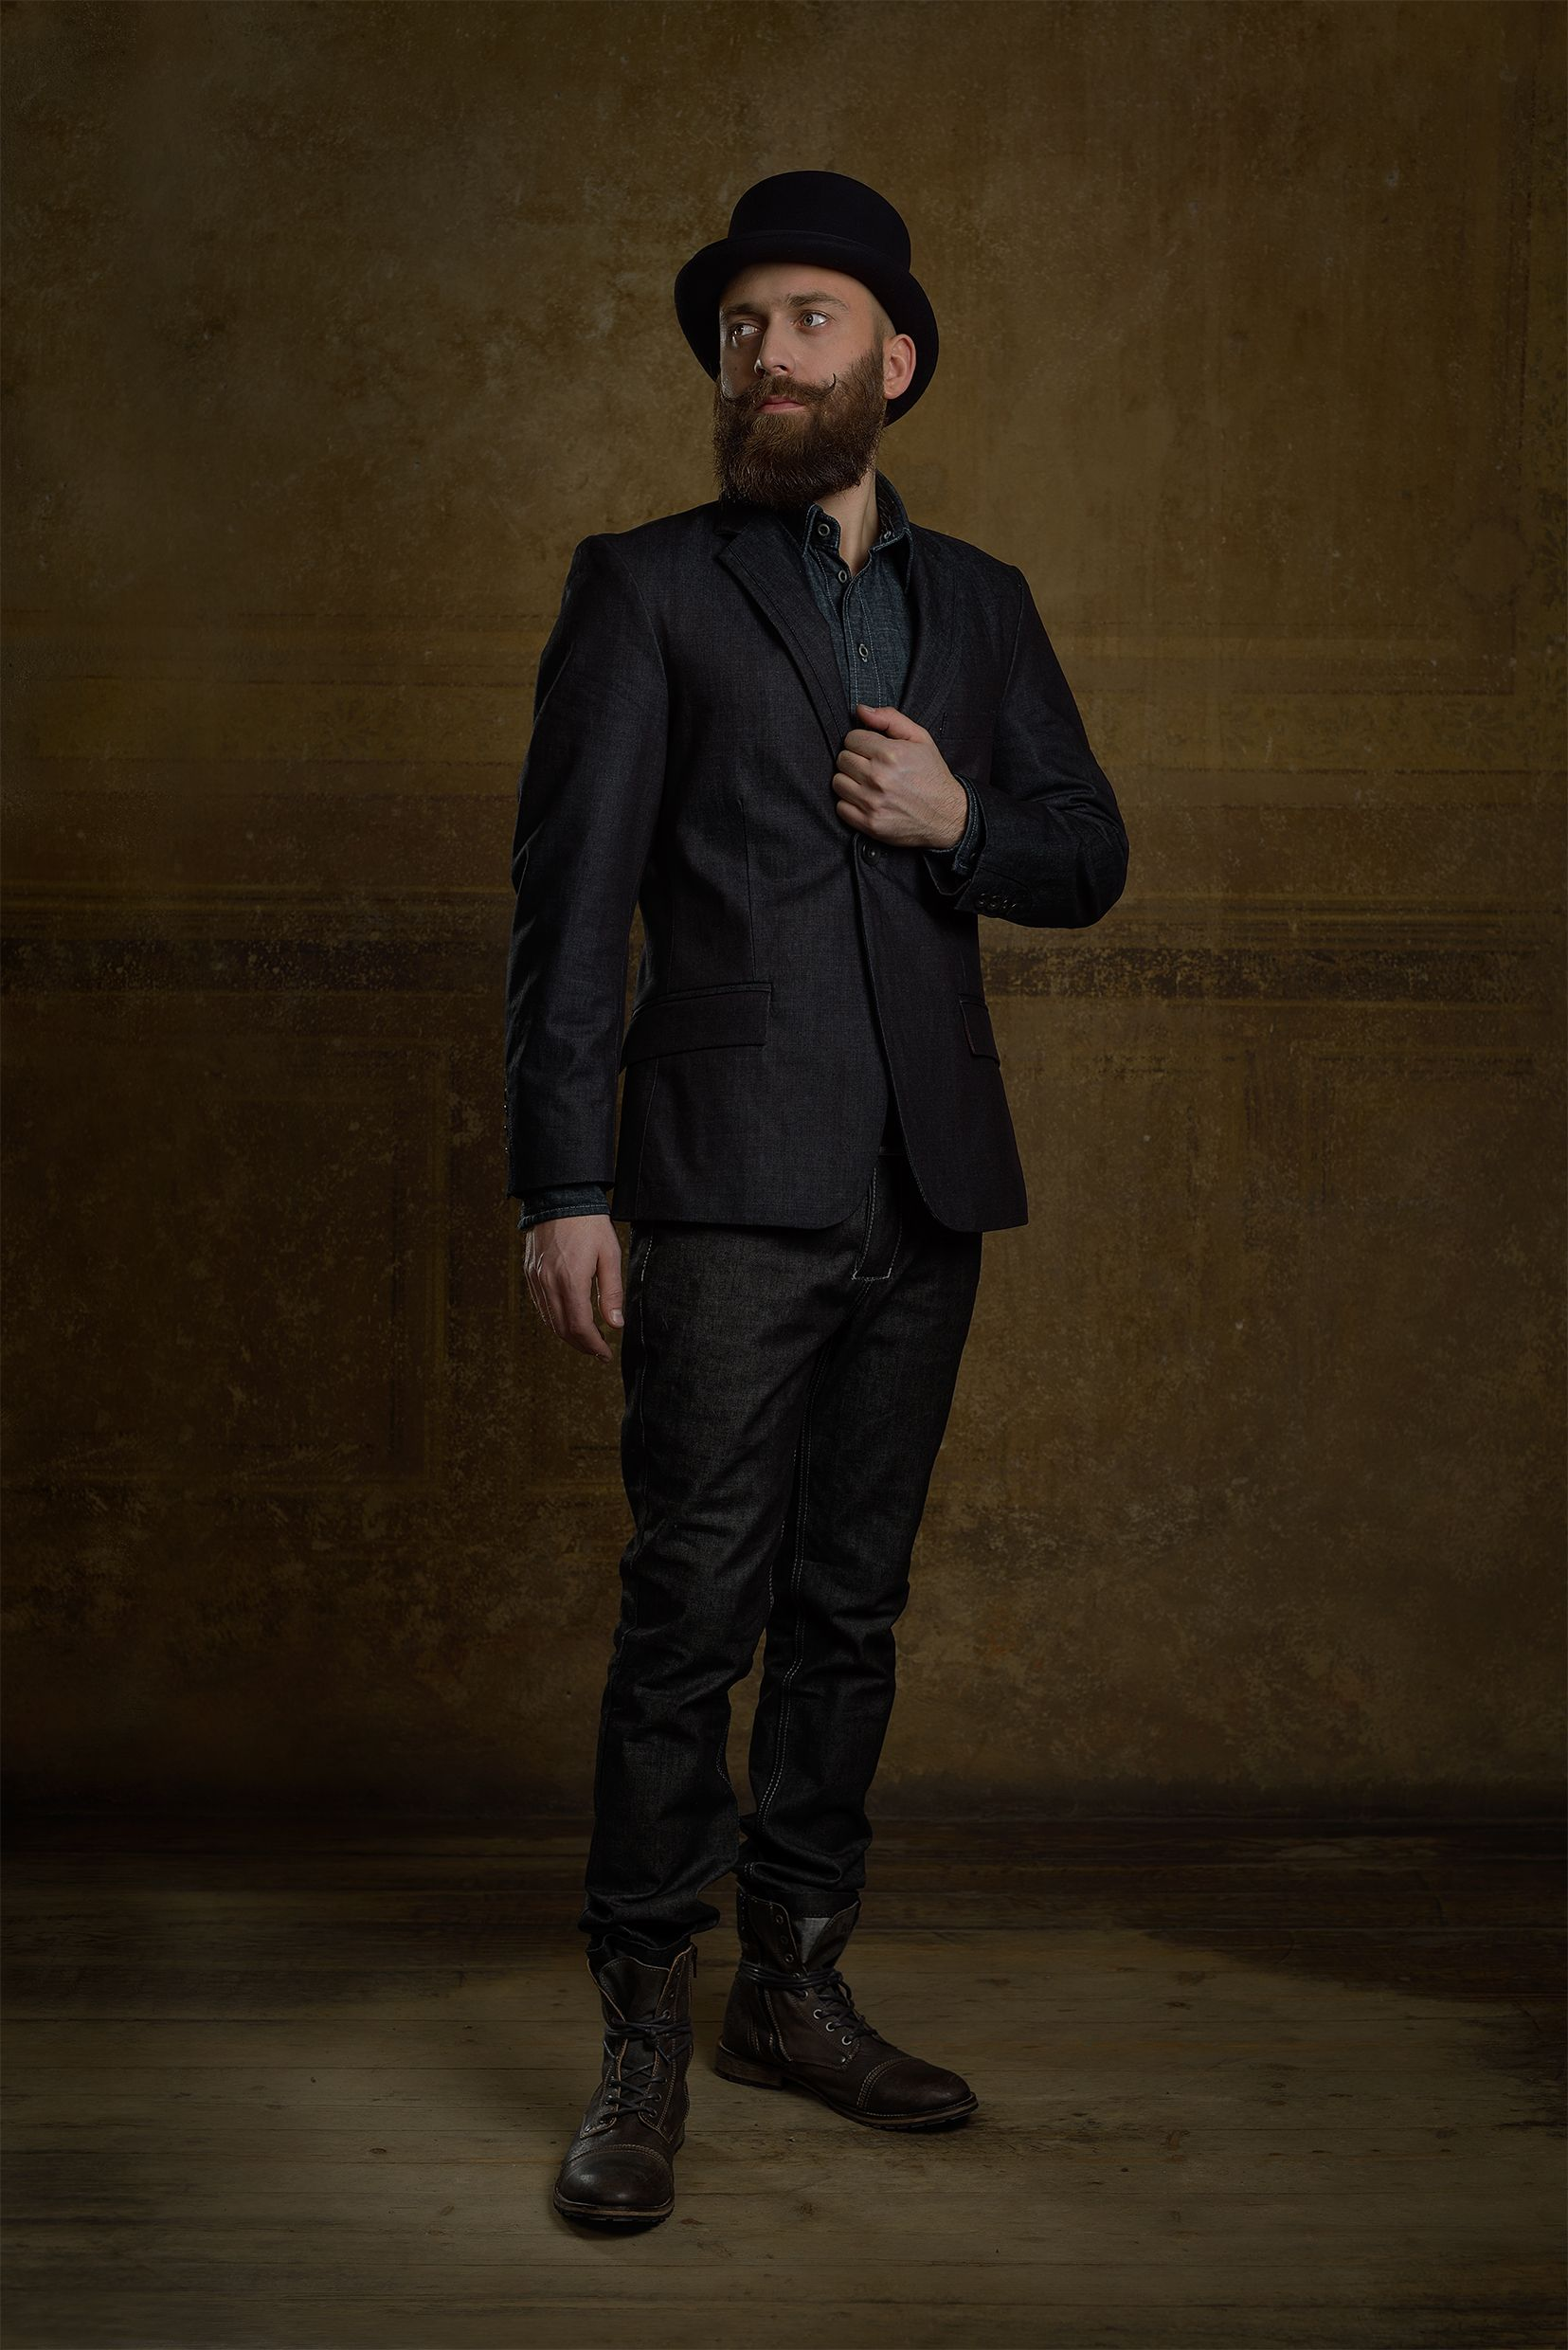 Handcrafted raw denim suit + tophat by Reval Denim Guild / Chapter One